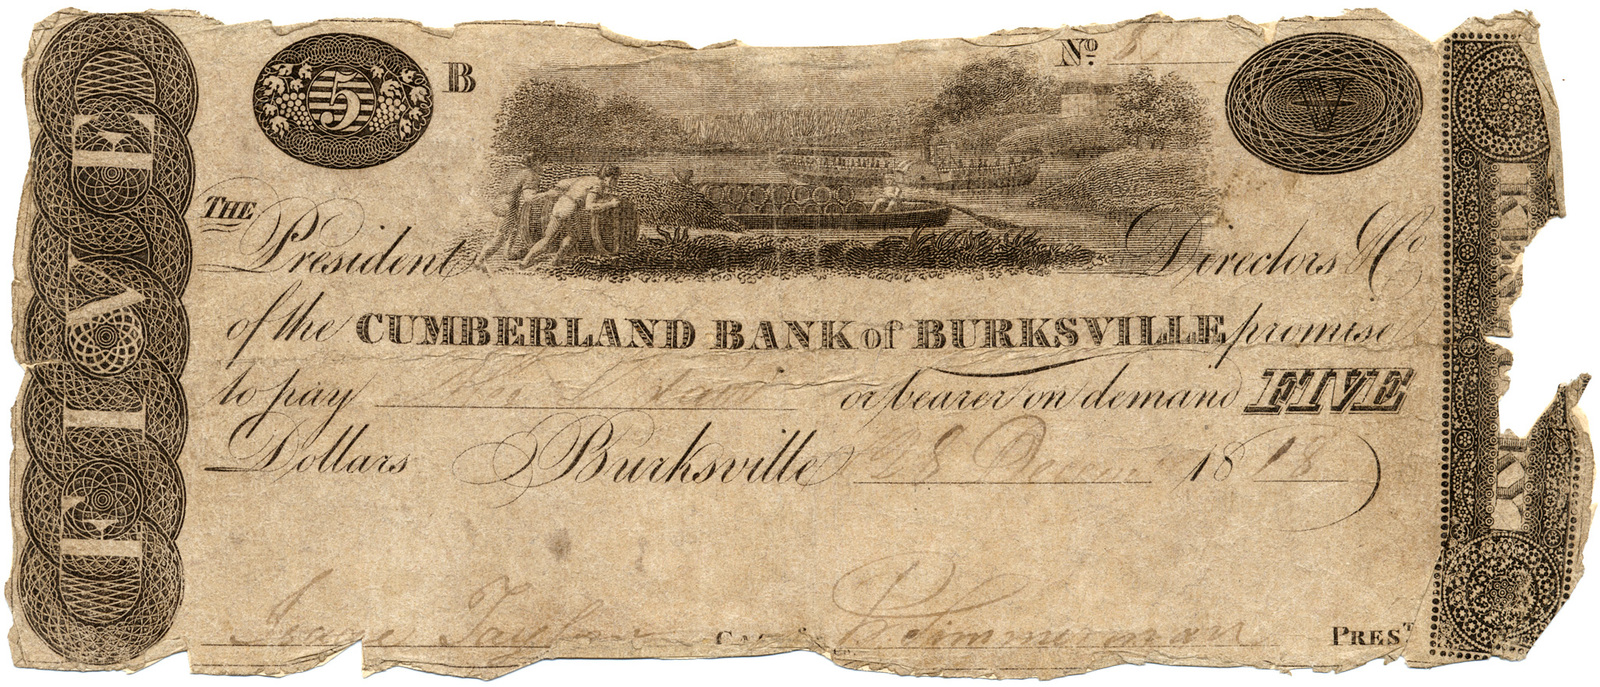 The president, directors co. of the Cumberland Bank of Burksville promise to pay ... or bearer on demand five dollars. Burksville 28 Decem. 1818.